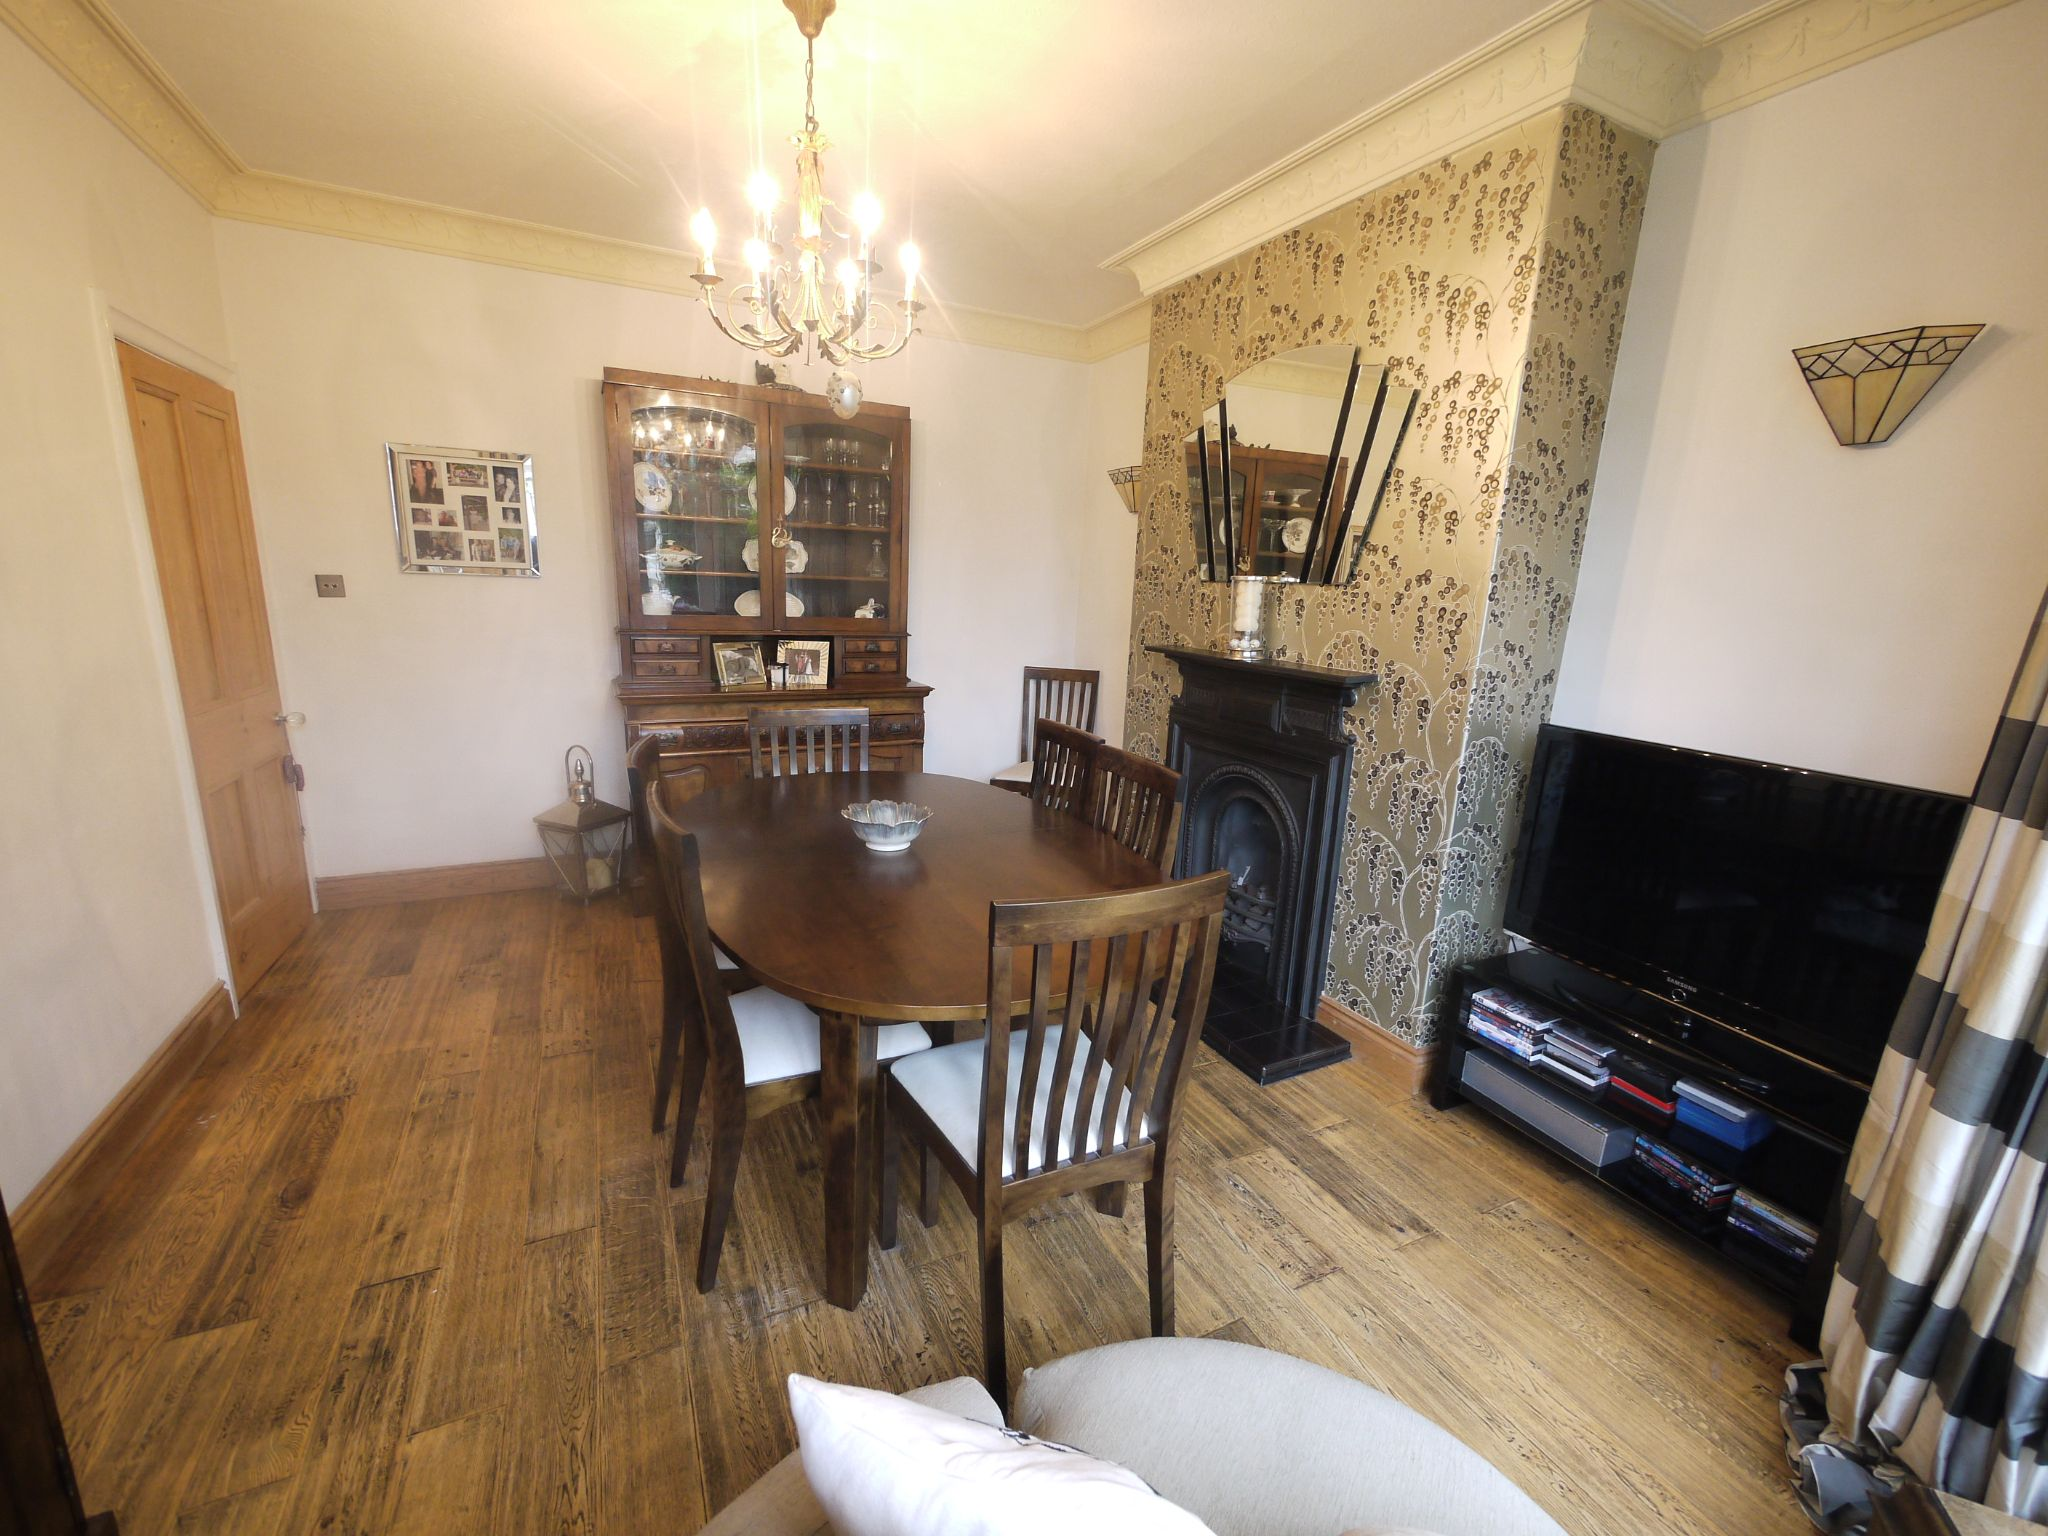 4 bedroom semi-detached house SSTC in Halifax - Dining Room 2.